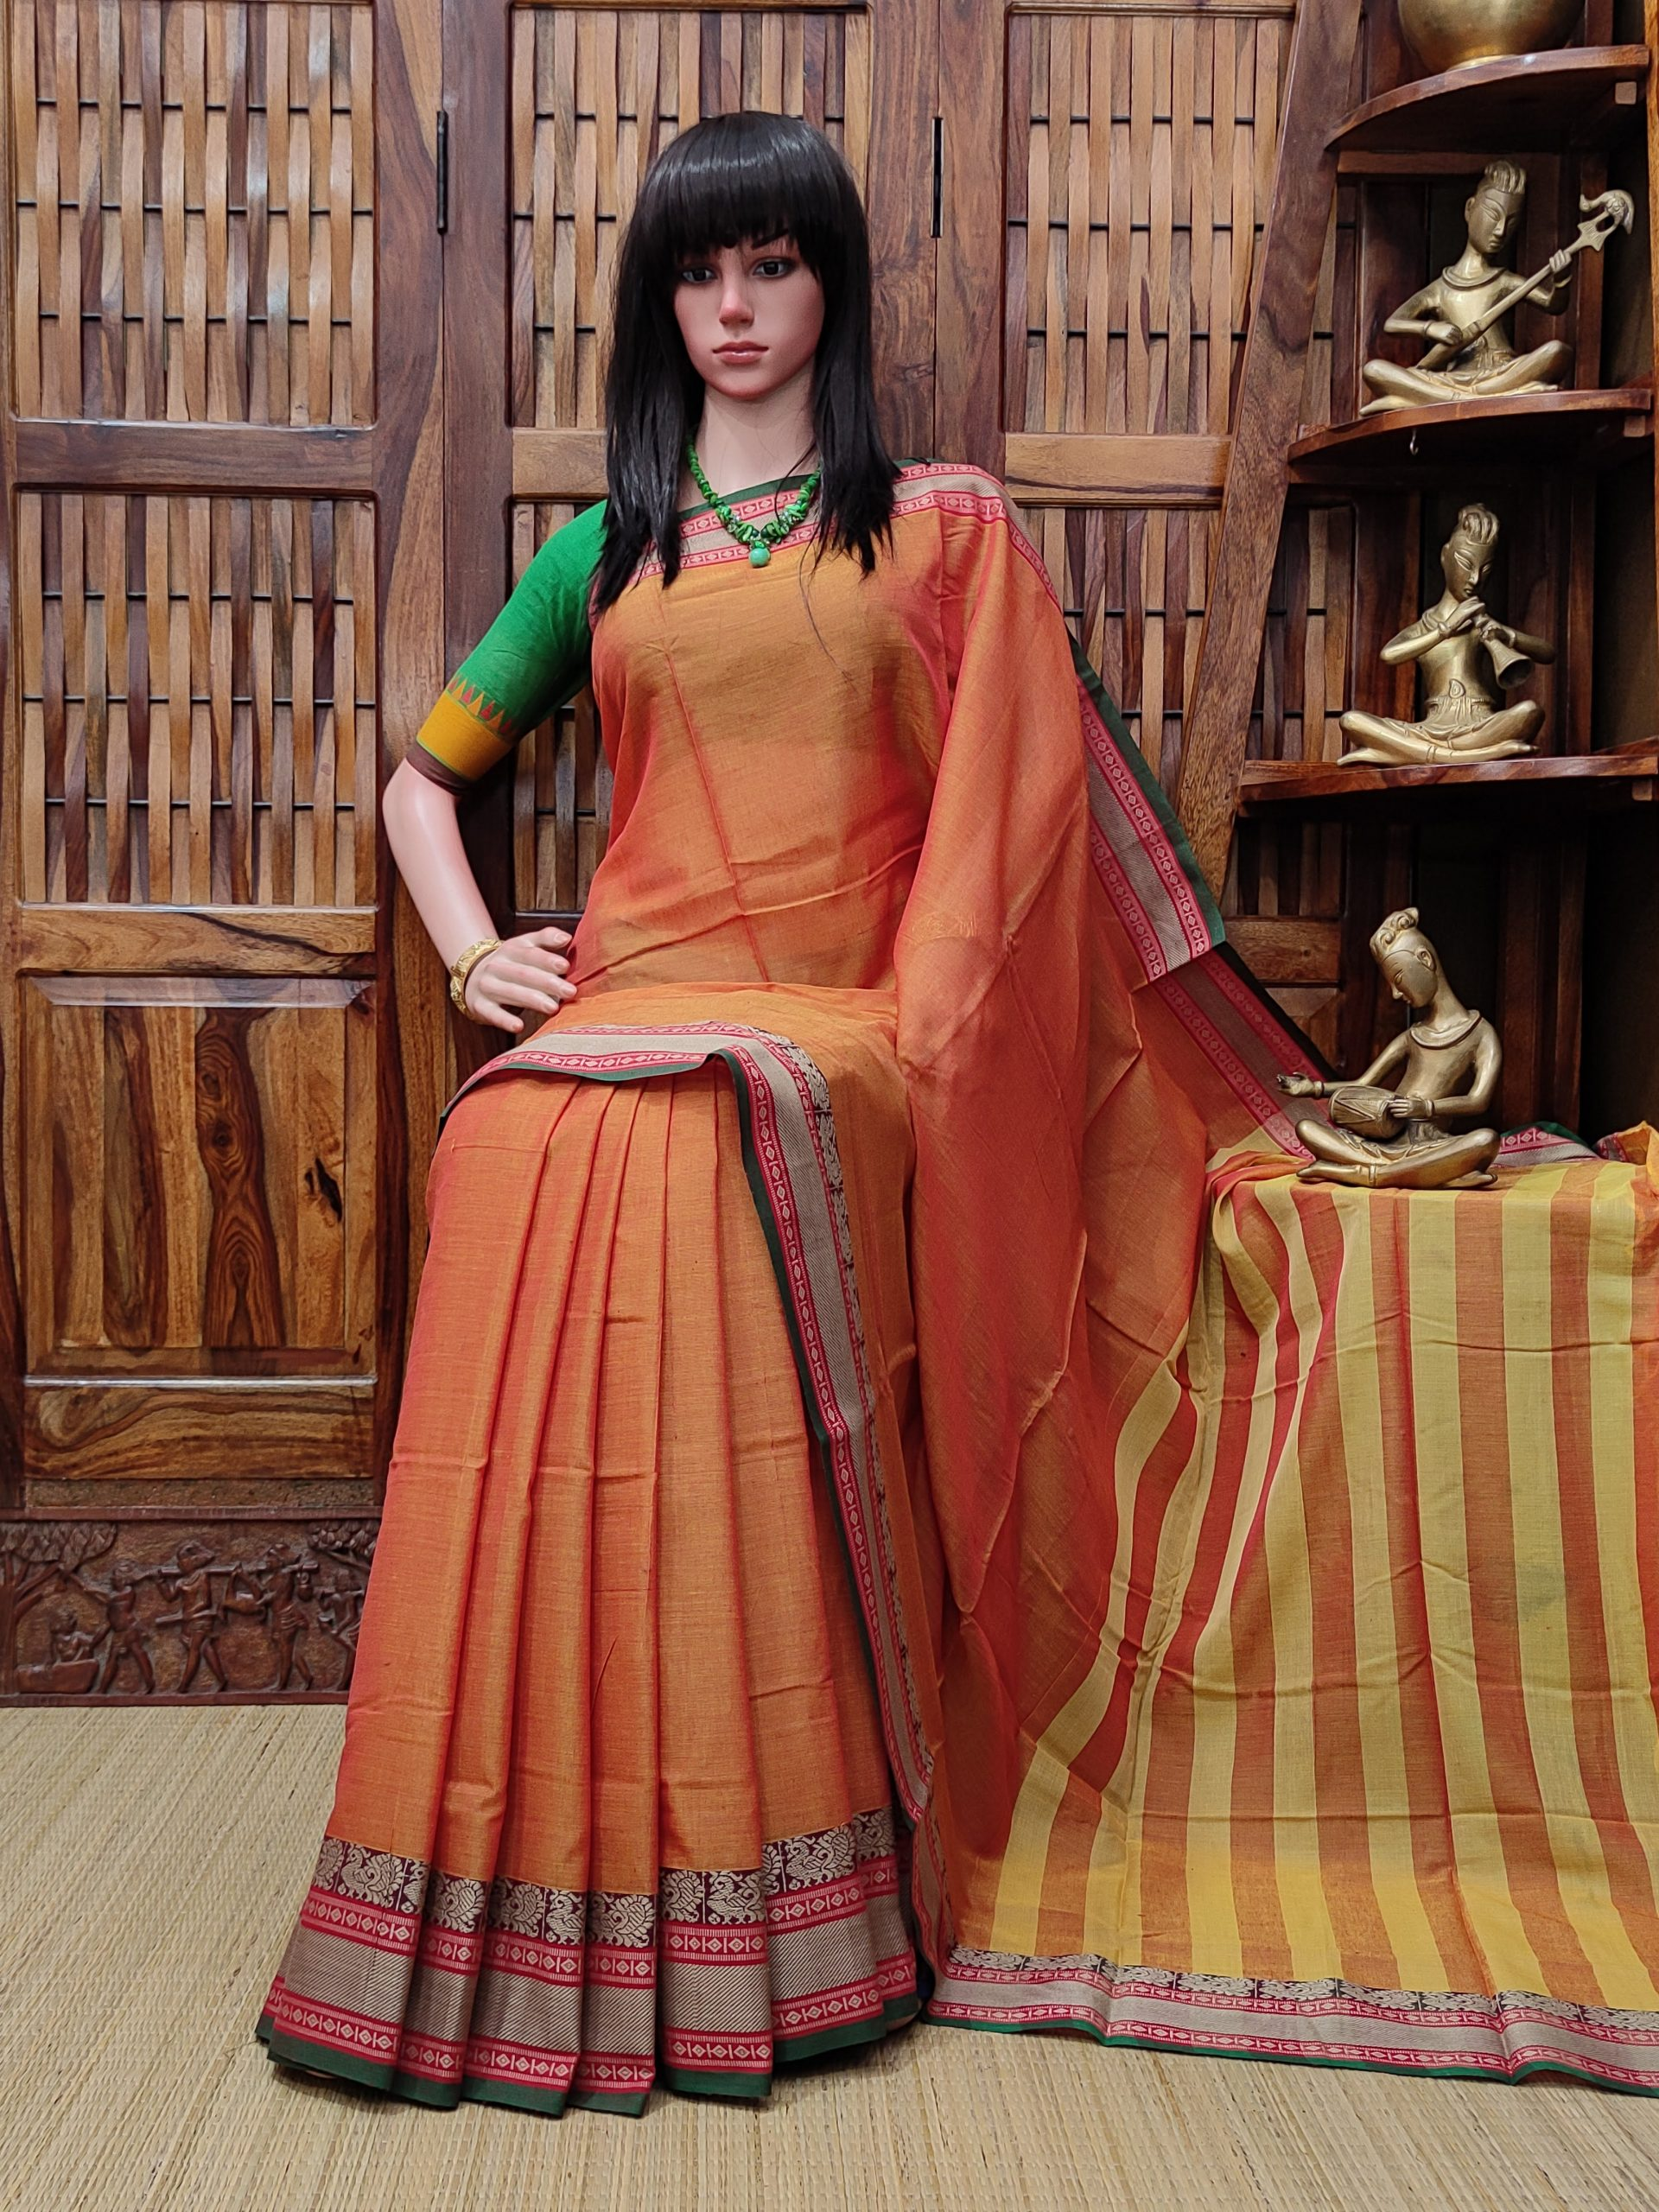 Malaka - Mercerized Pearl Cotton Saree